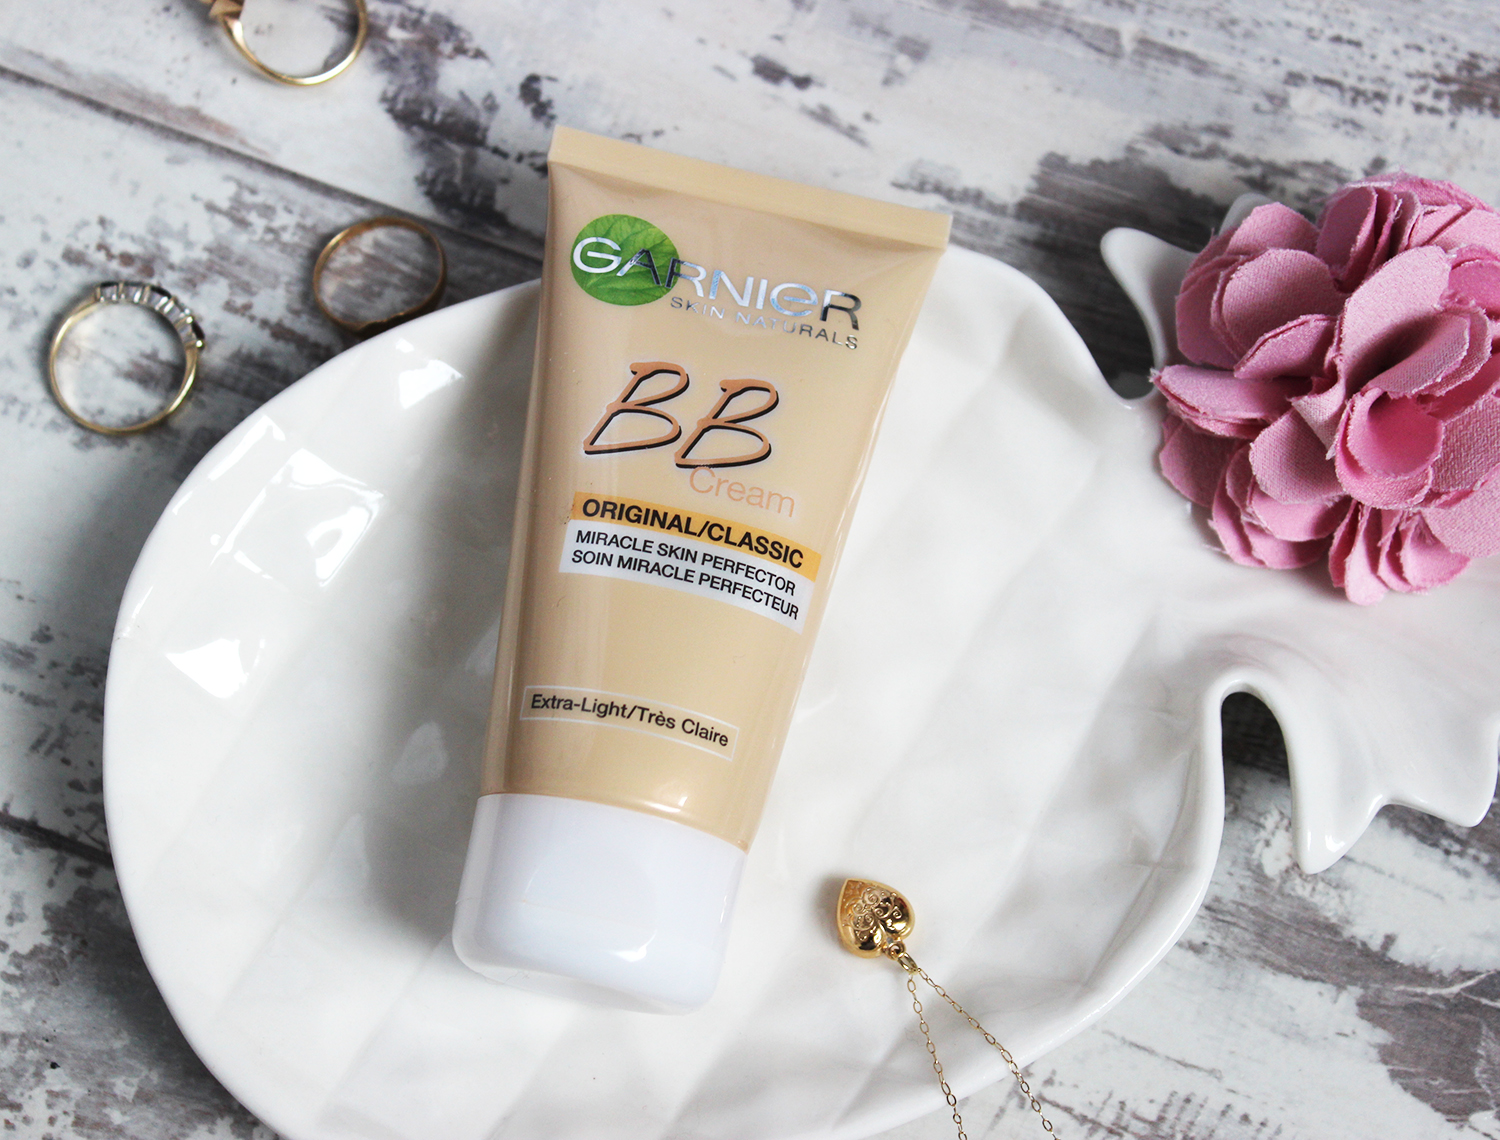 Garnier BB Cream Extra light reviewed by pale faced beauty blogger - product shot